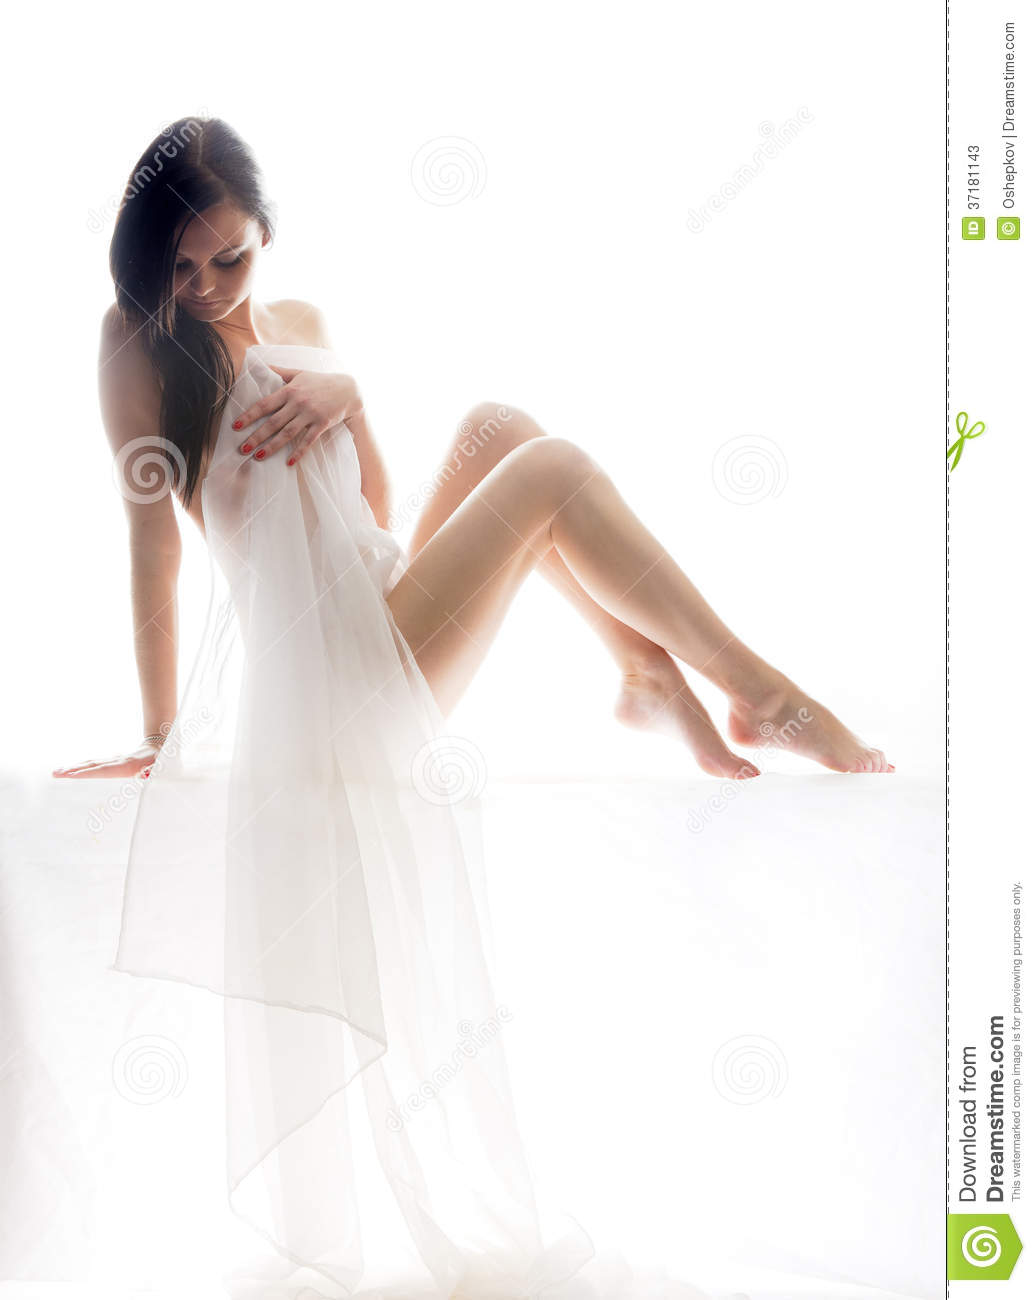 Clothes models transparent Adult